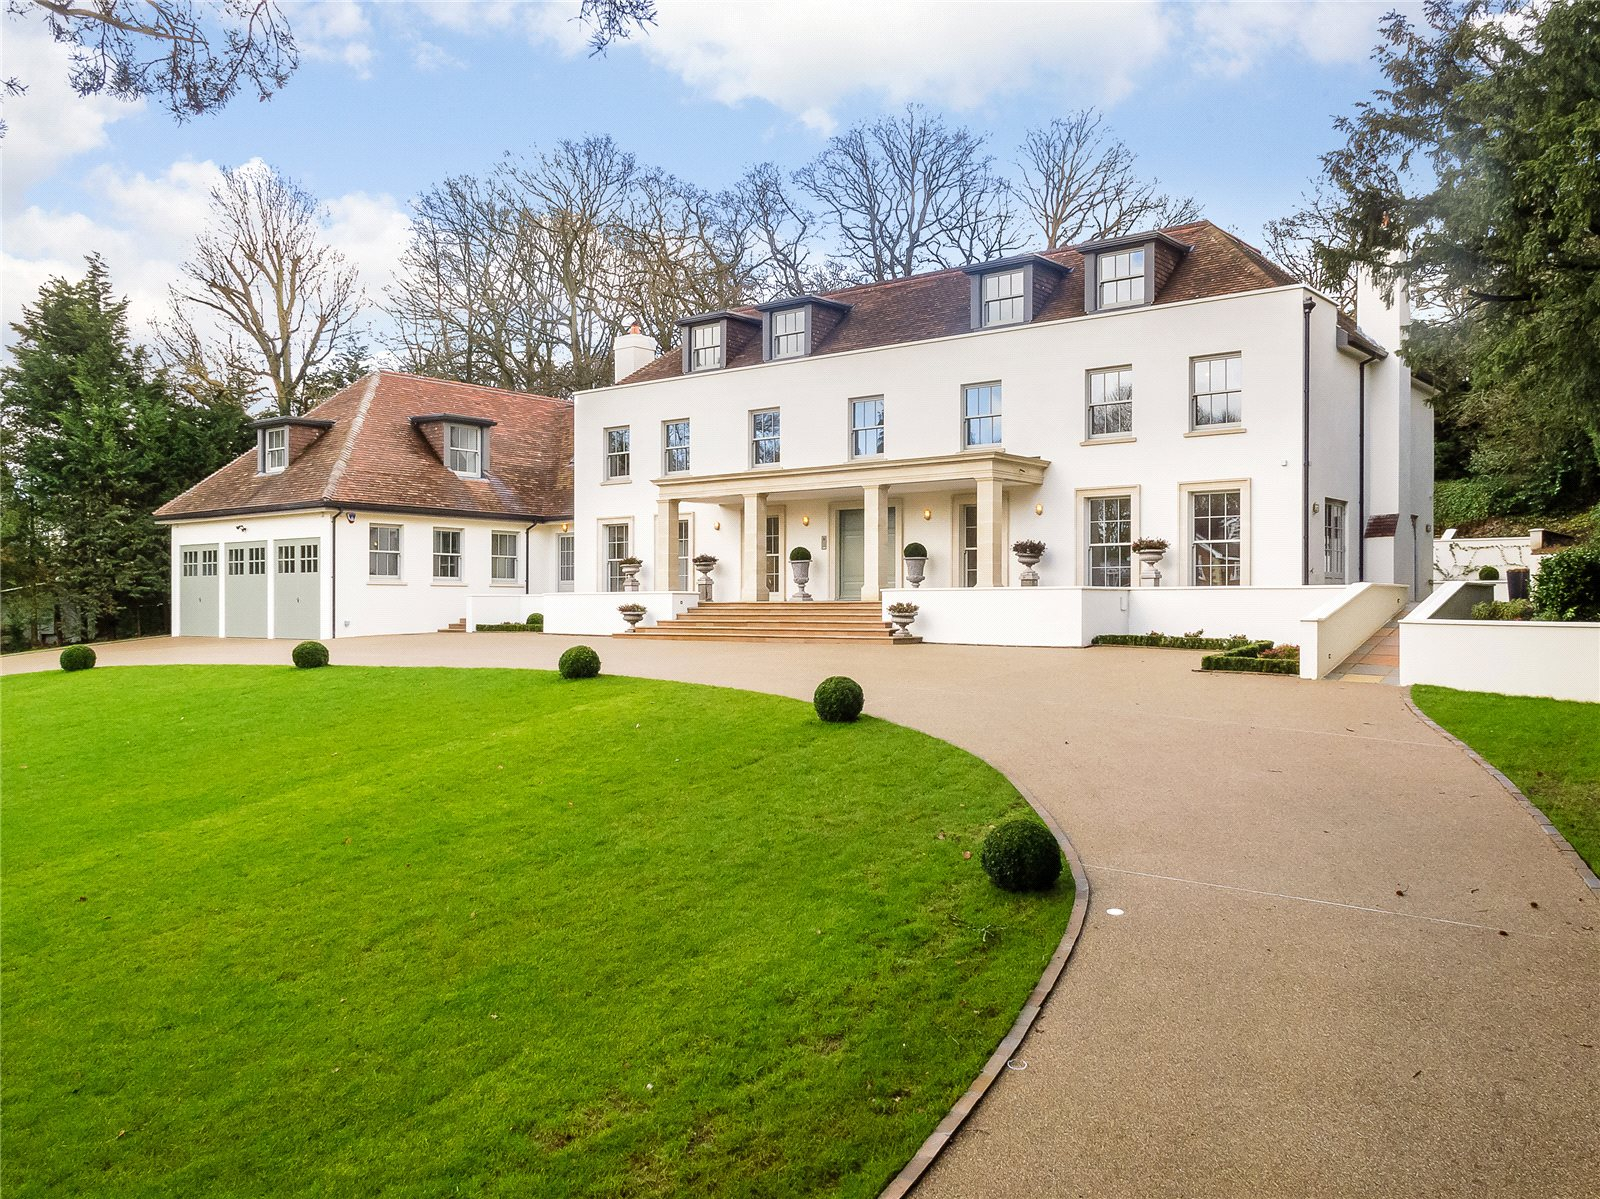 Villa per Vendita alle ore Camp Road, Gerrards Cross, Buckinghamshire, SL9 Gerrards Cross, Inghilterra